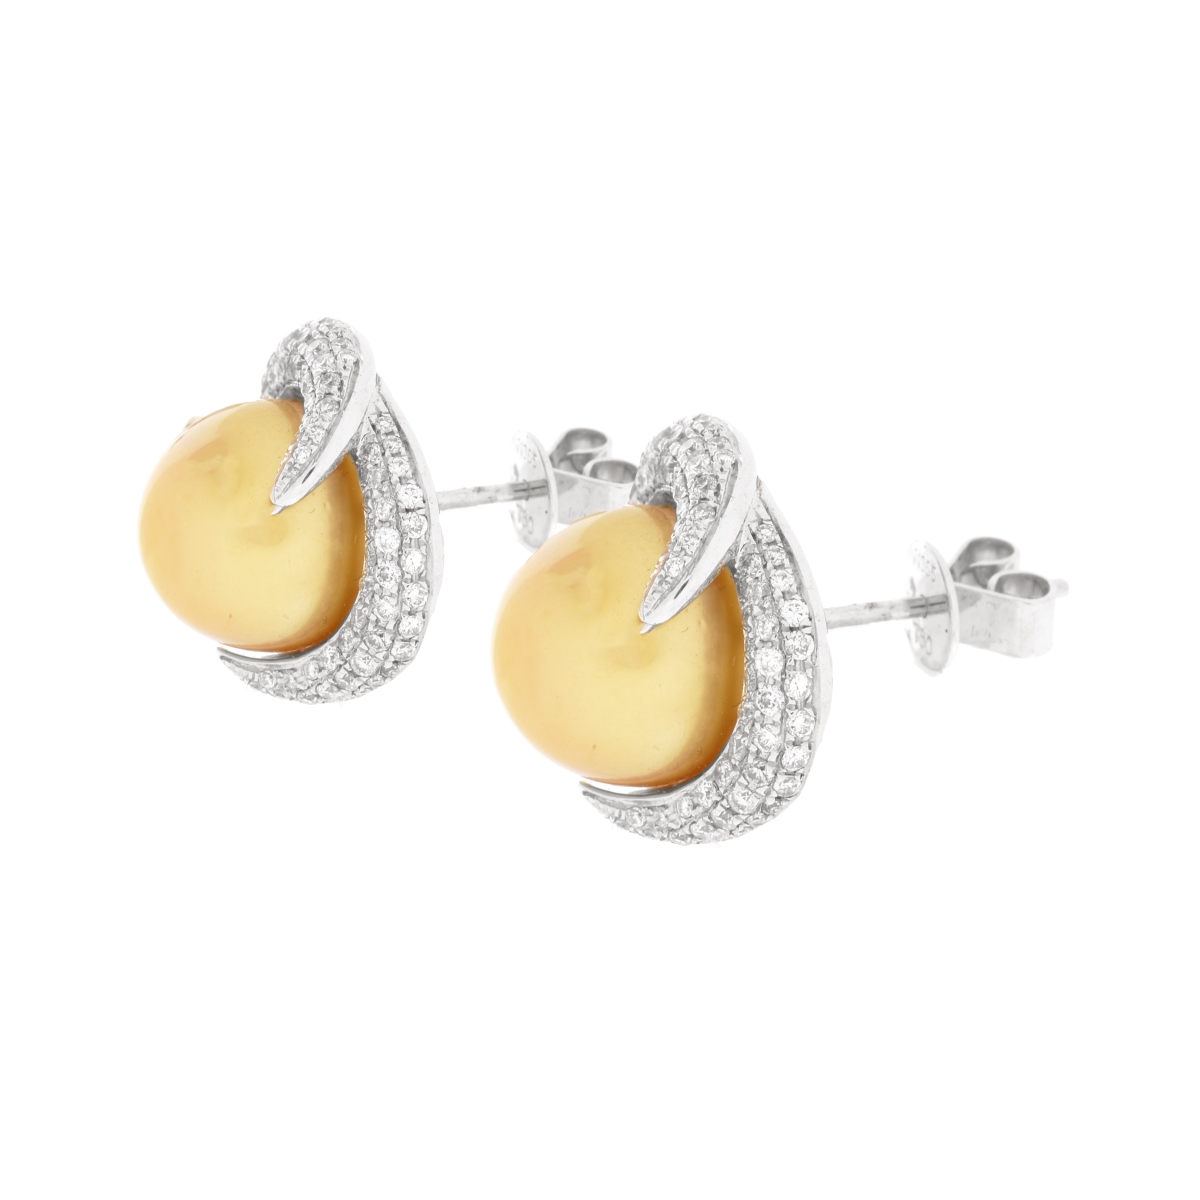 Pearl, Diamond and 18K Earrings